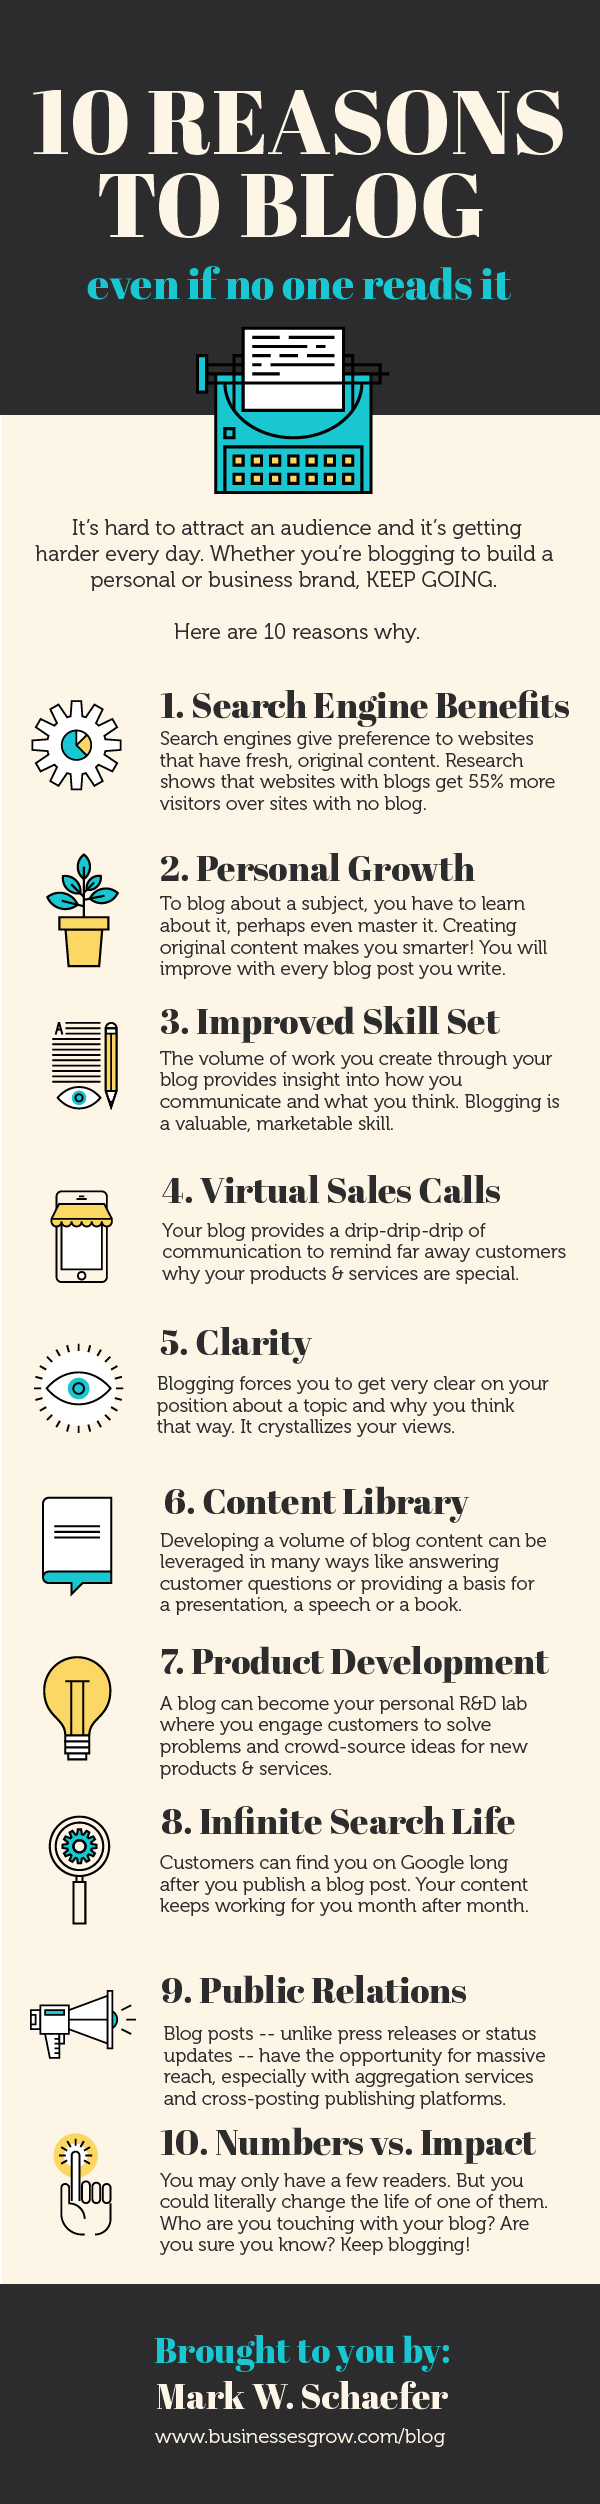 10-reasons-to-blog-even-if-no-one-reads-it-final-infographic-markschaefer